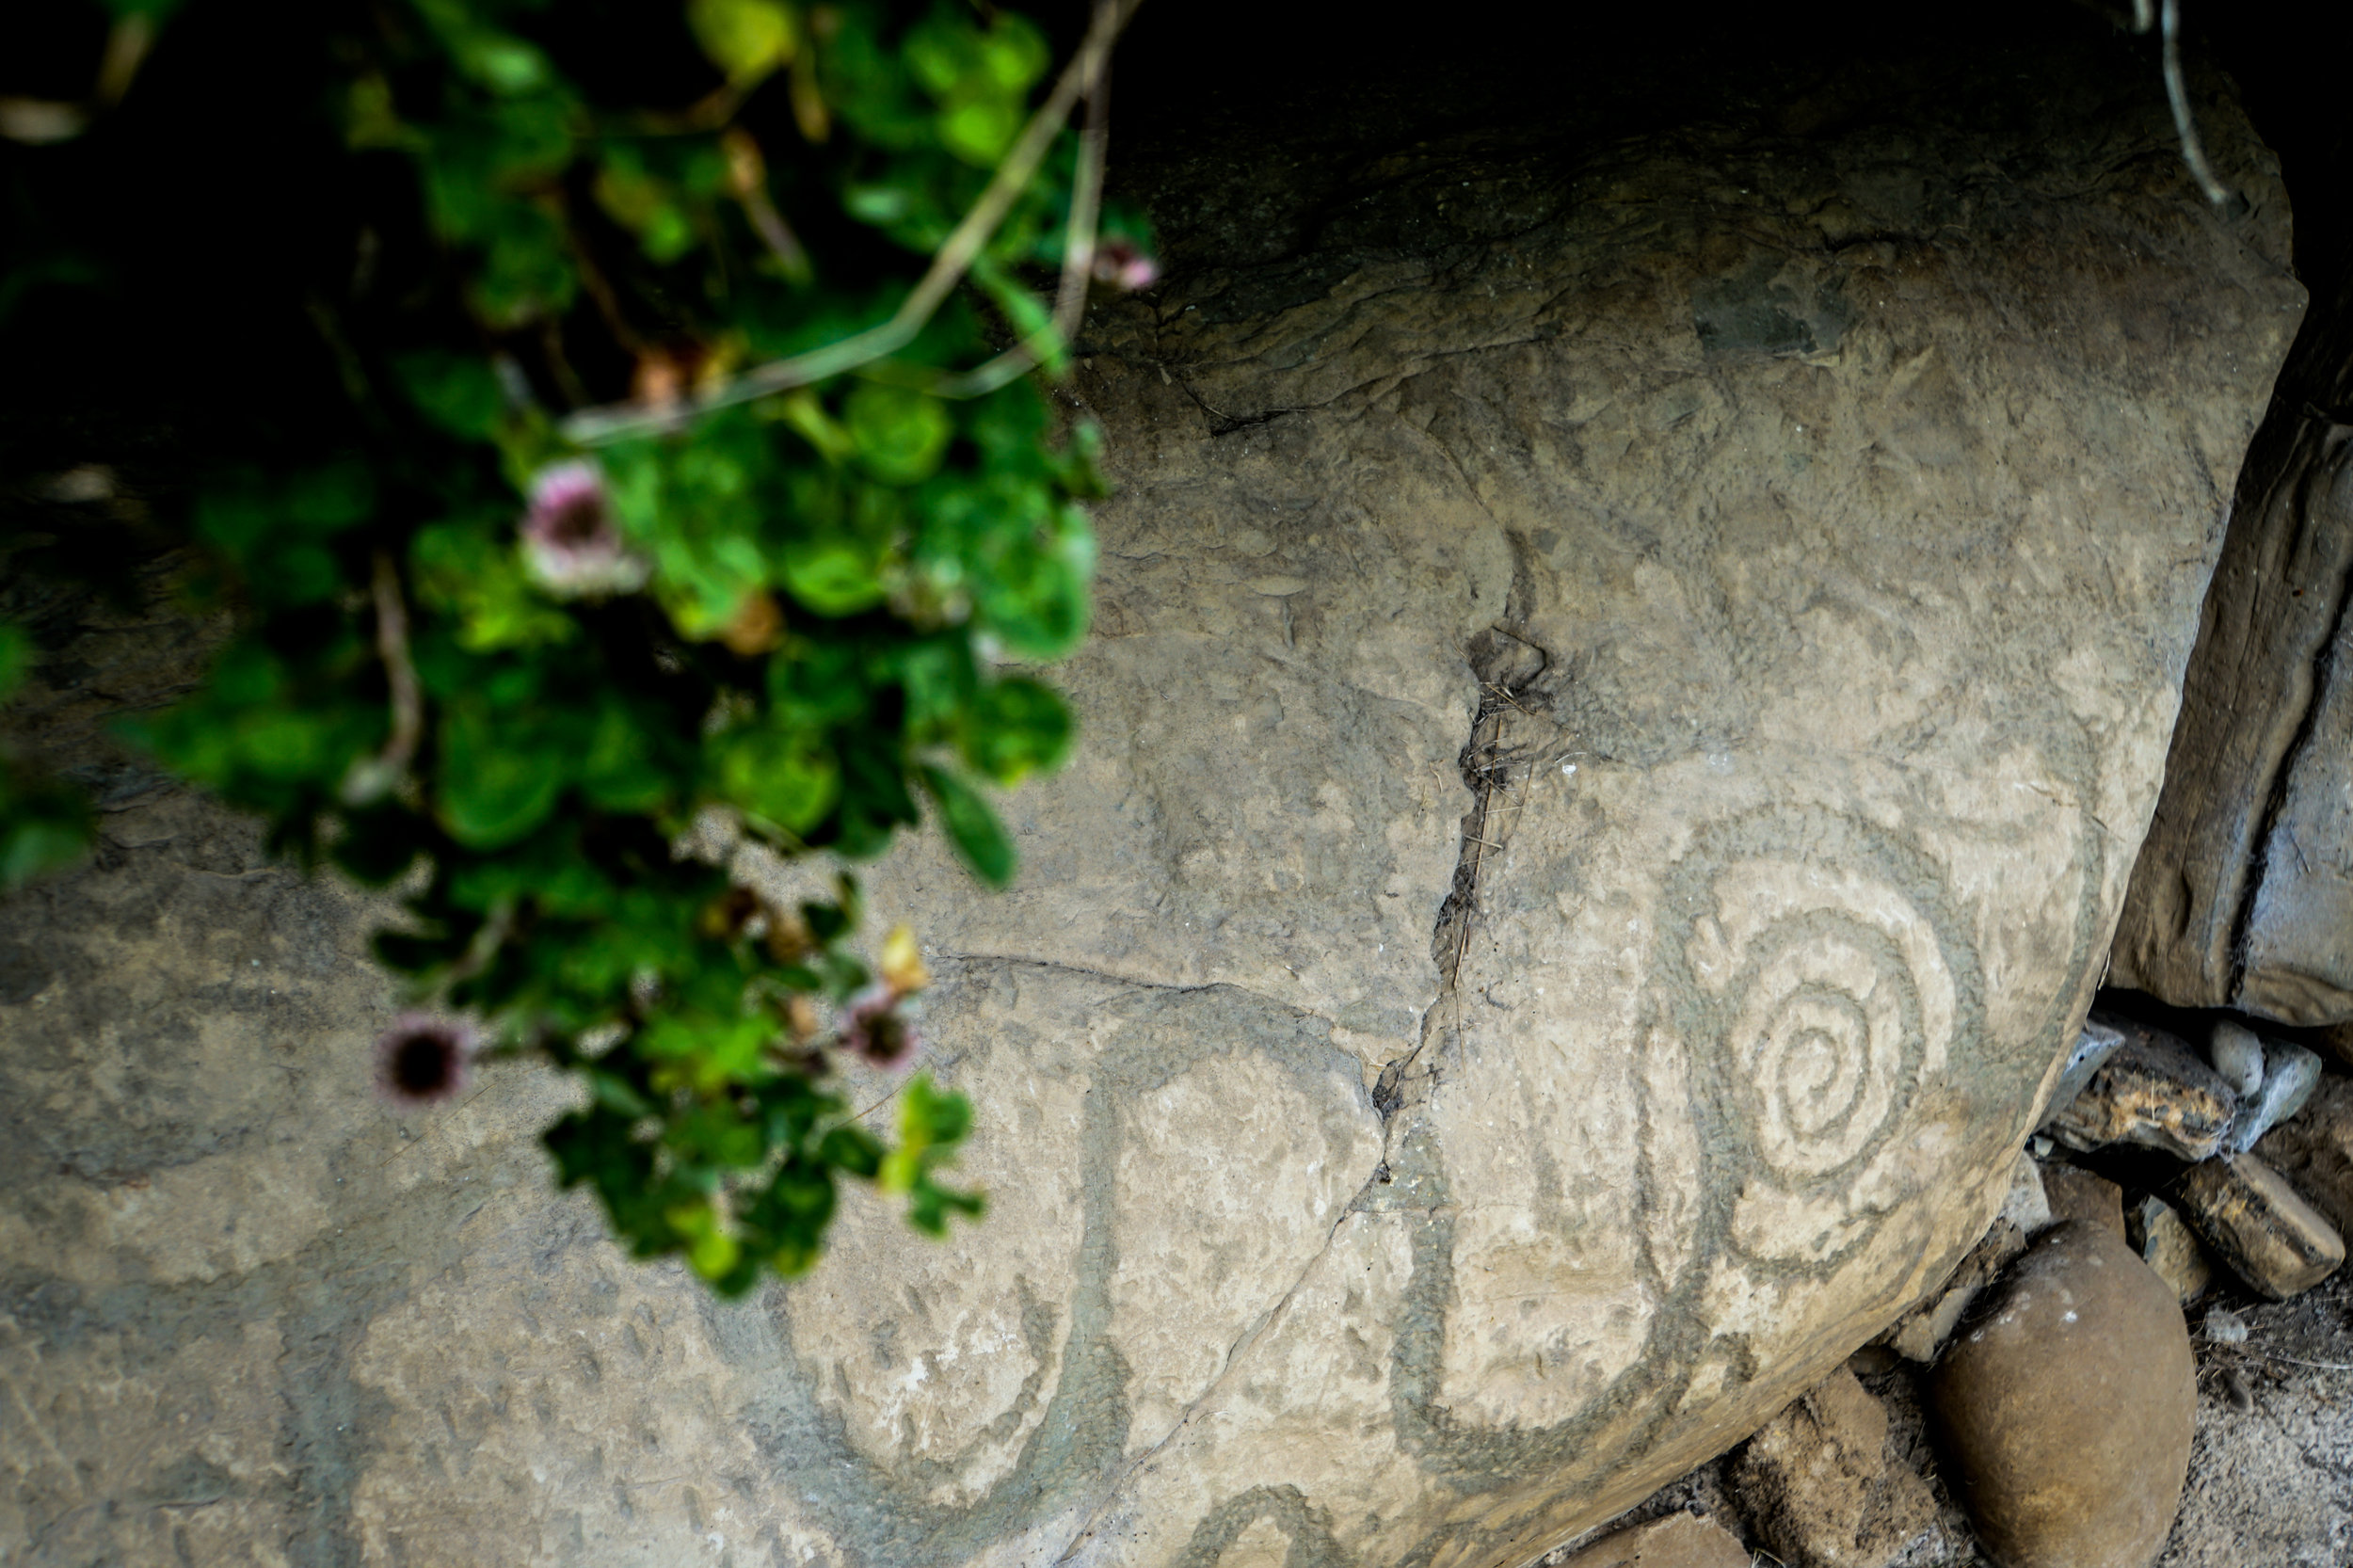 The ancient peoples of Ireland carved spirals and snakes into the stones supporting the mound.